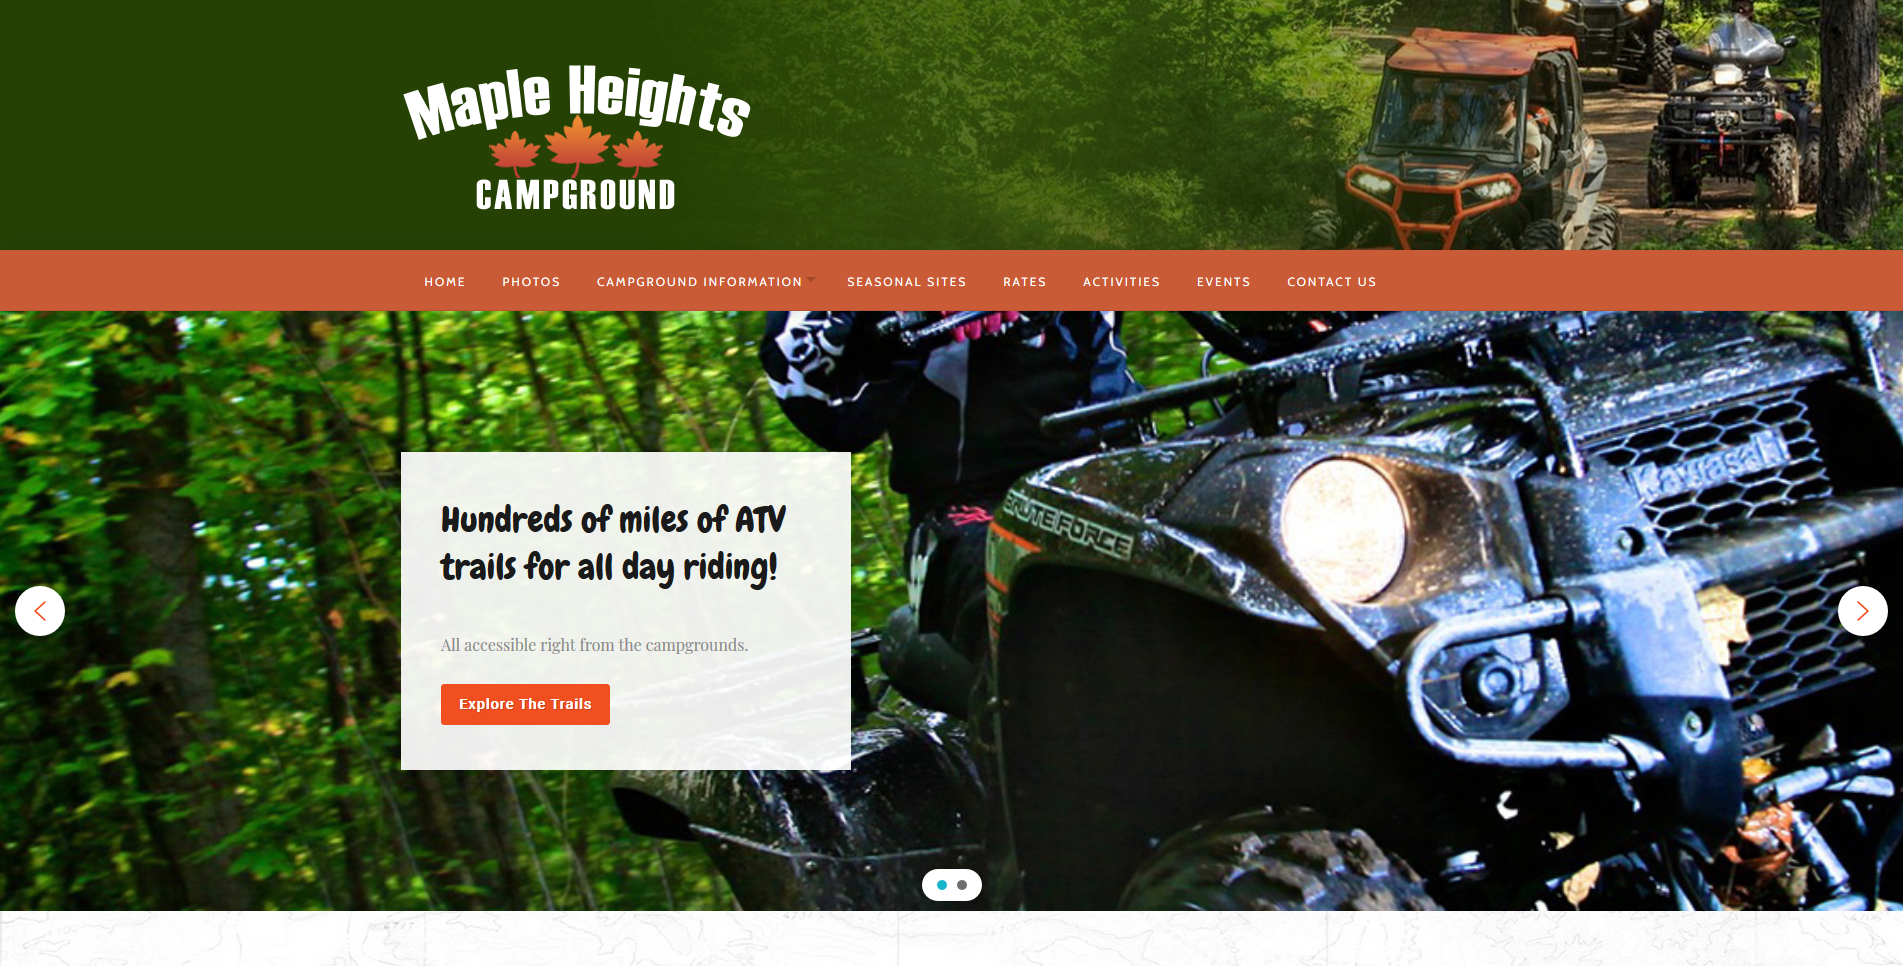 Campground Web Design by Big Groovy Designs